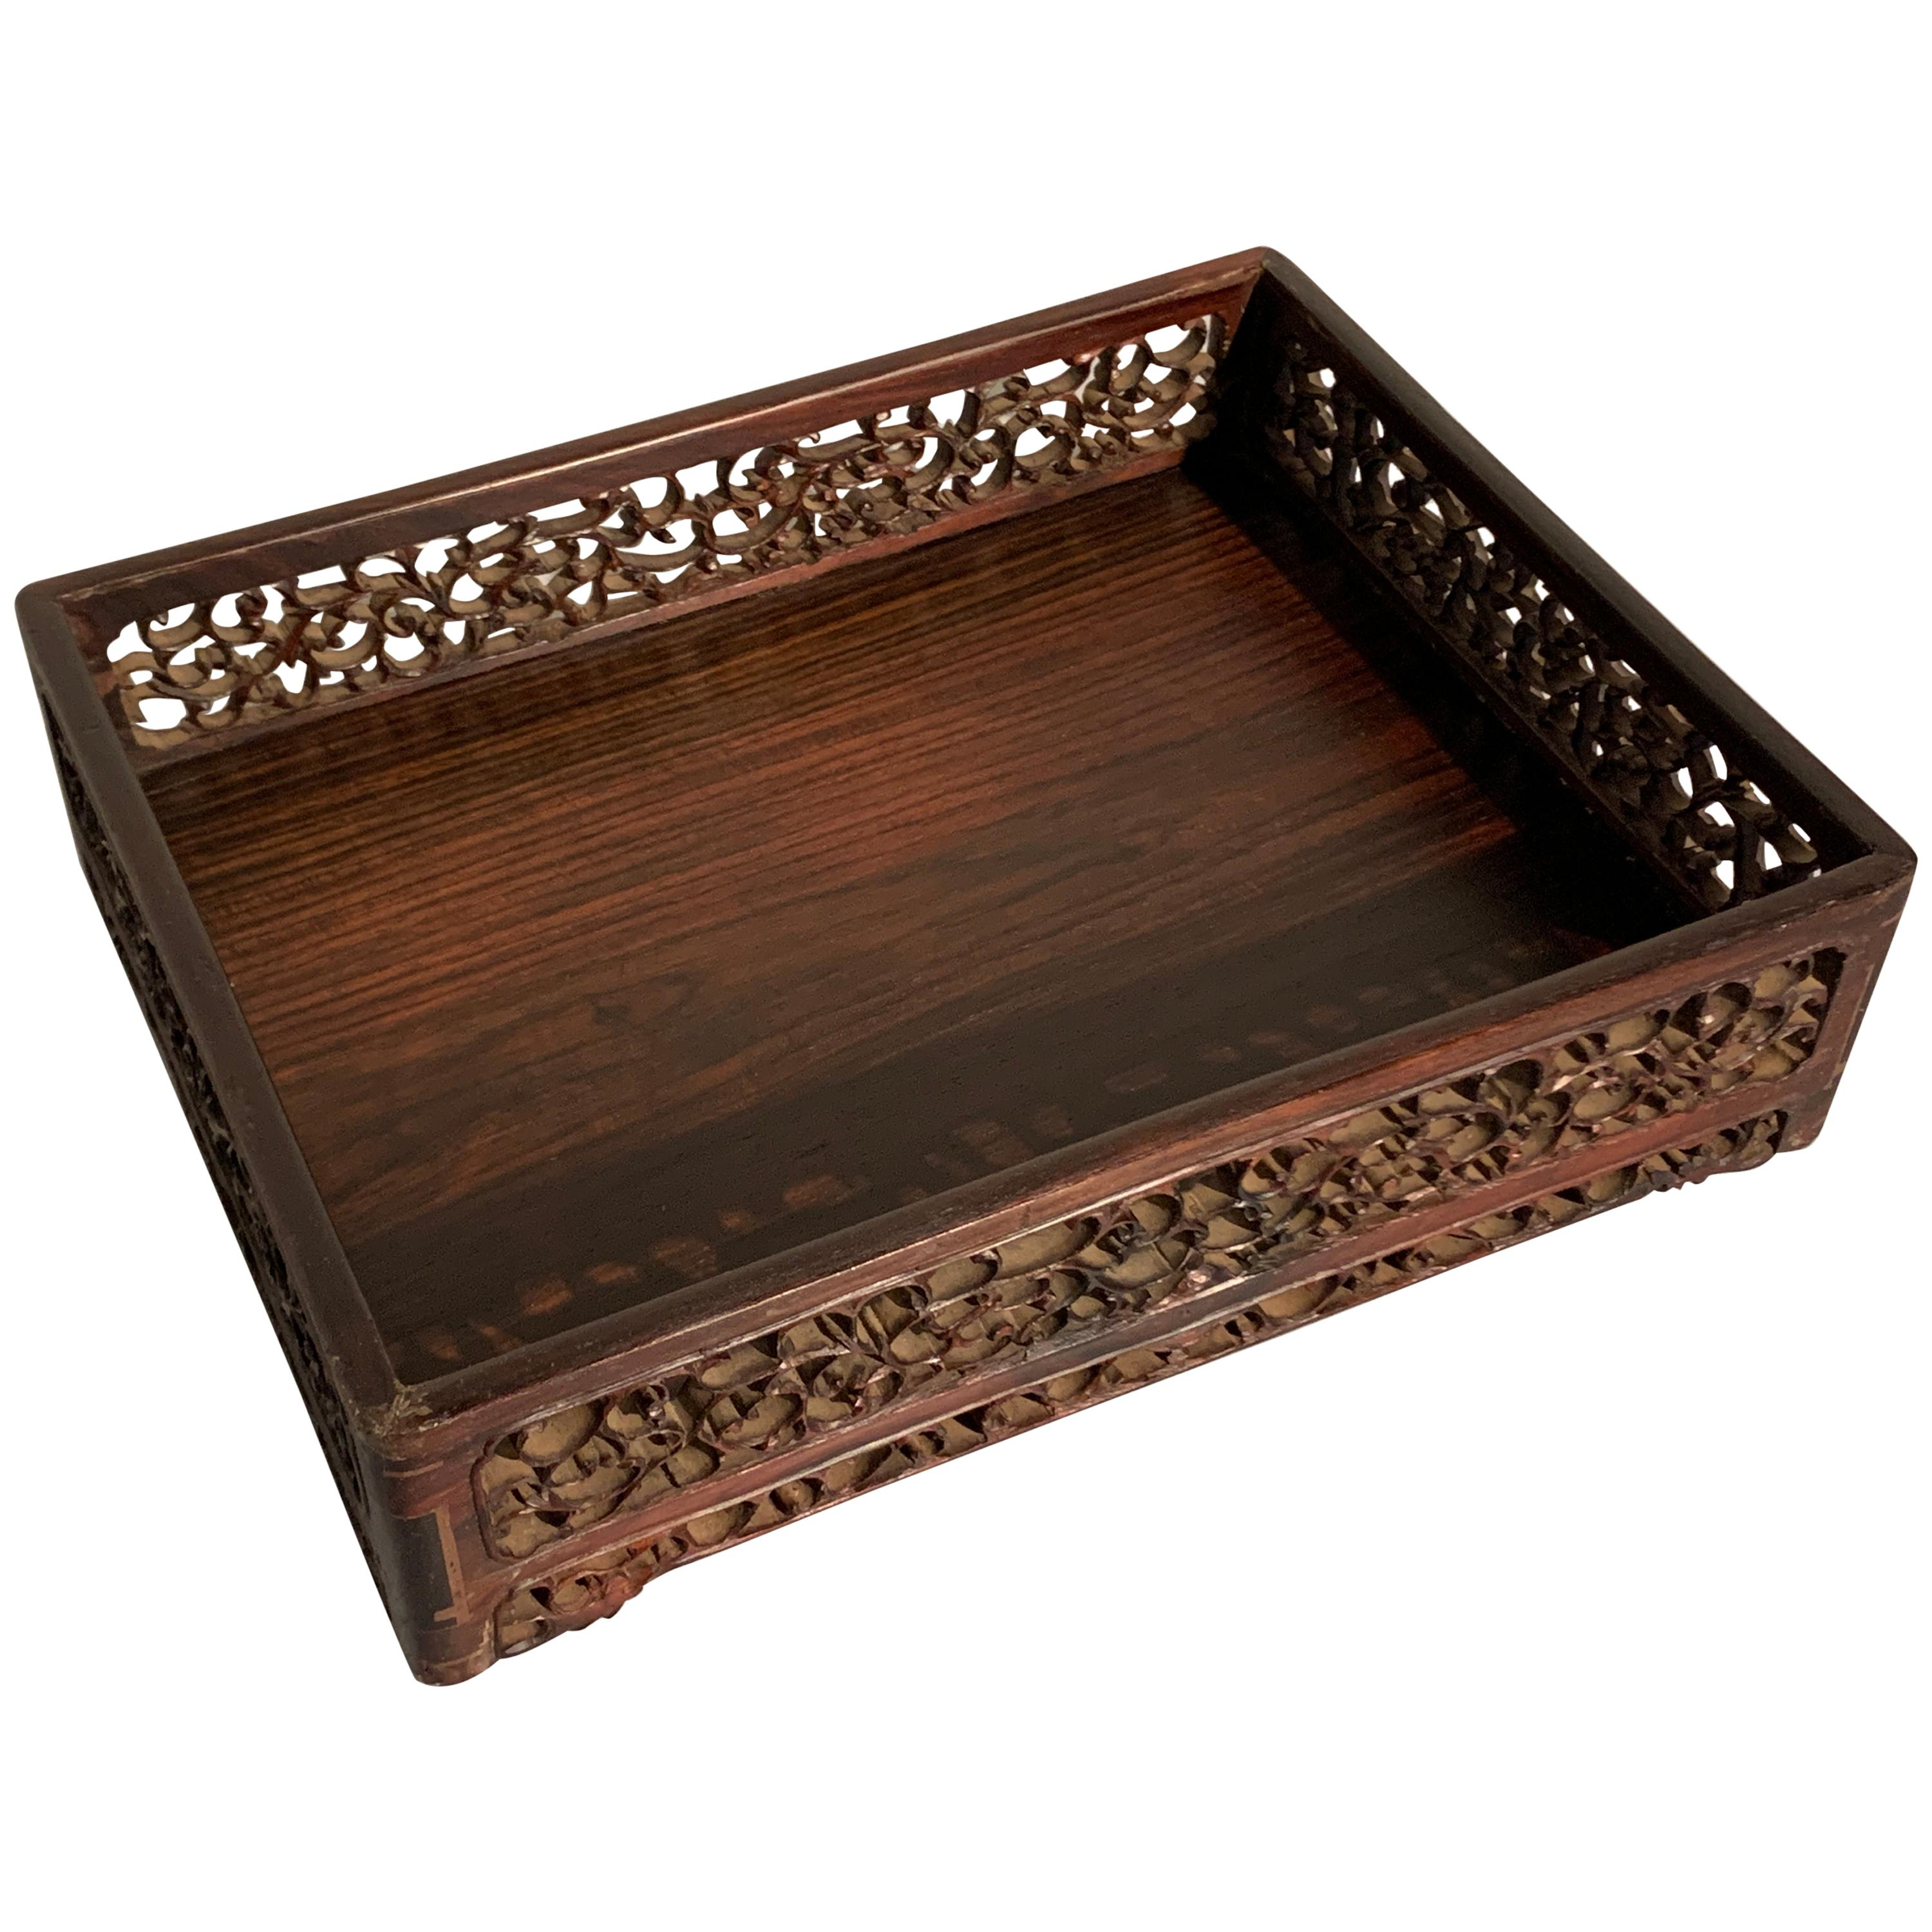 Chinese Carved Hardwood Scholar's Tray, Qing Dynasty, 19th Century, China